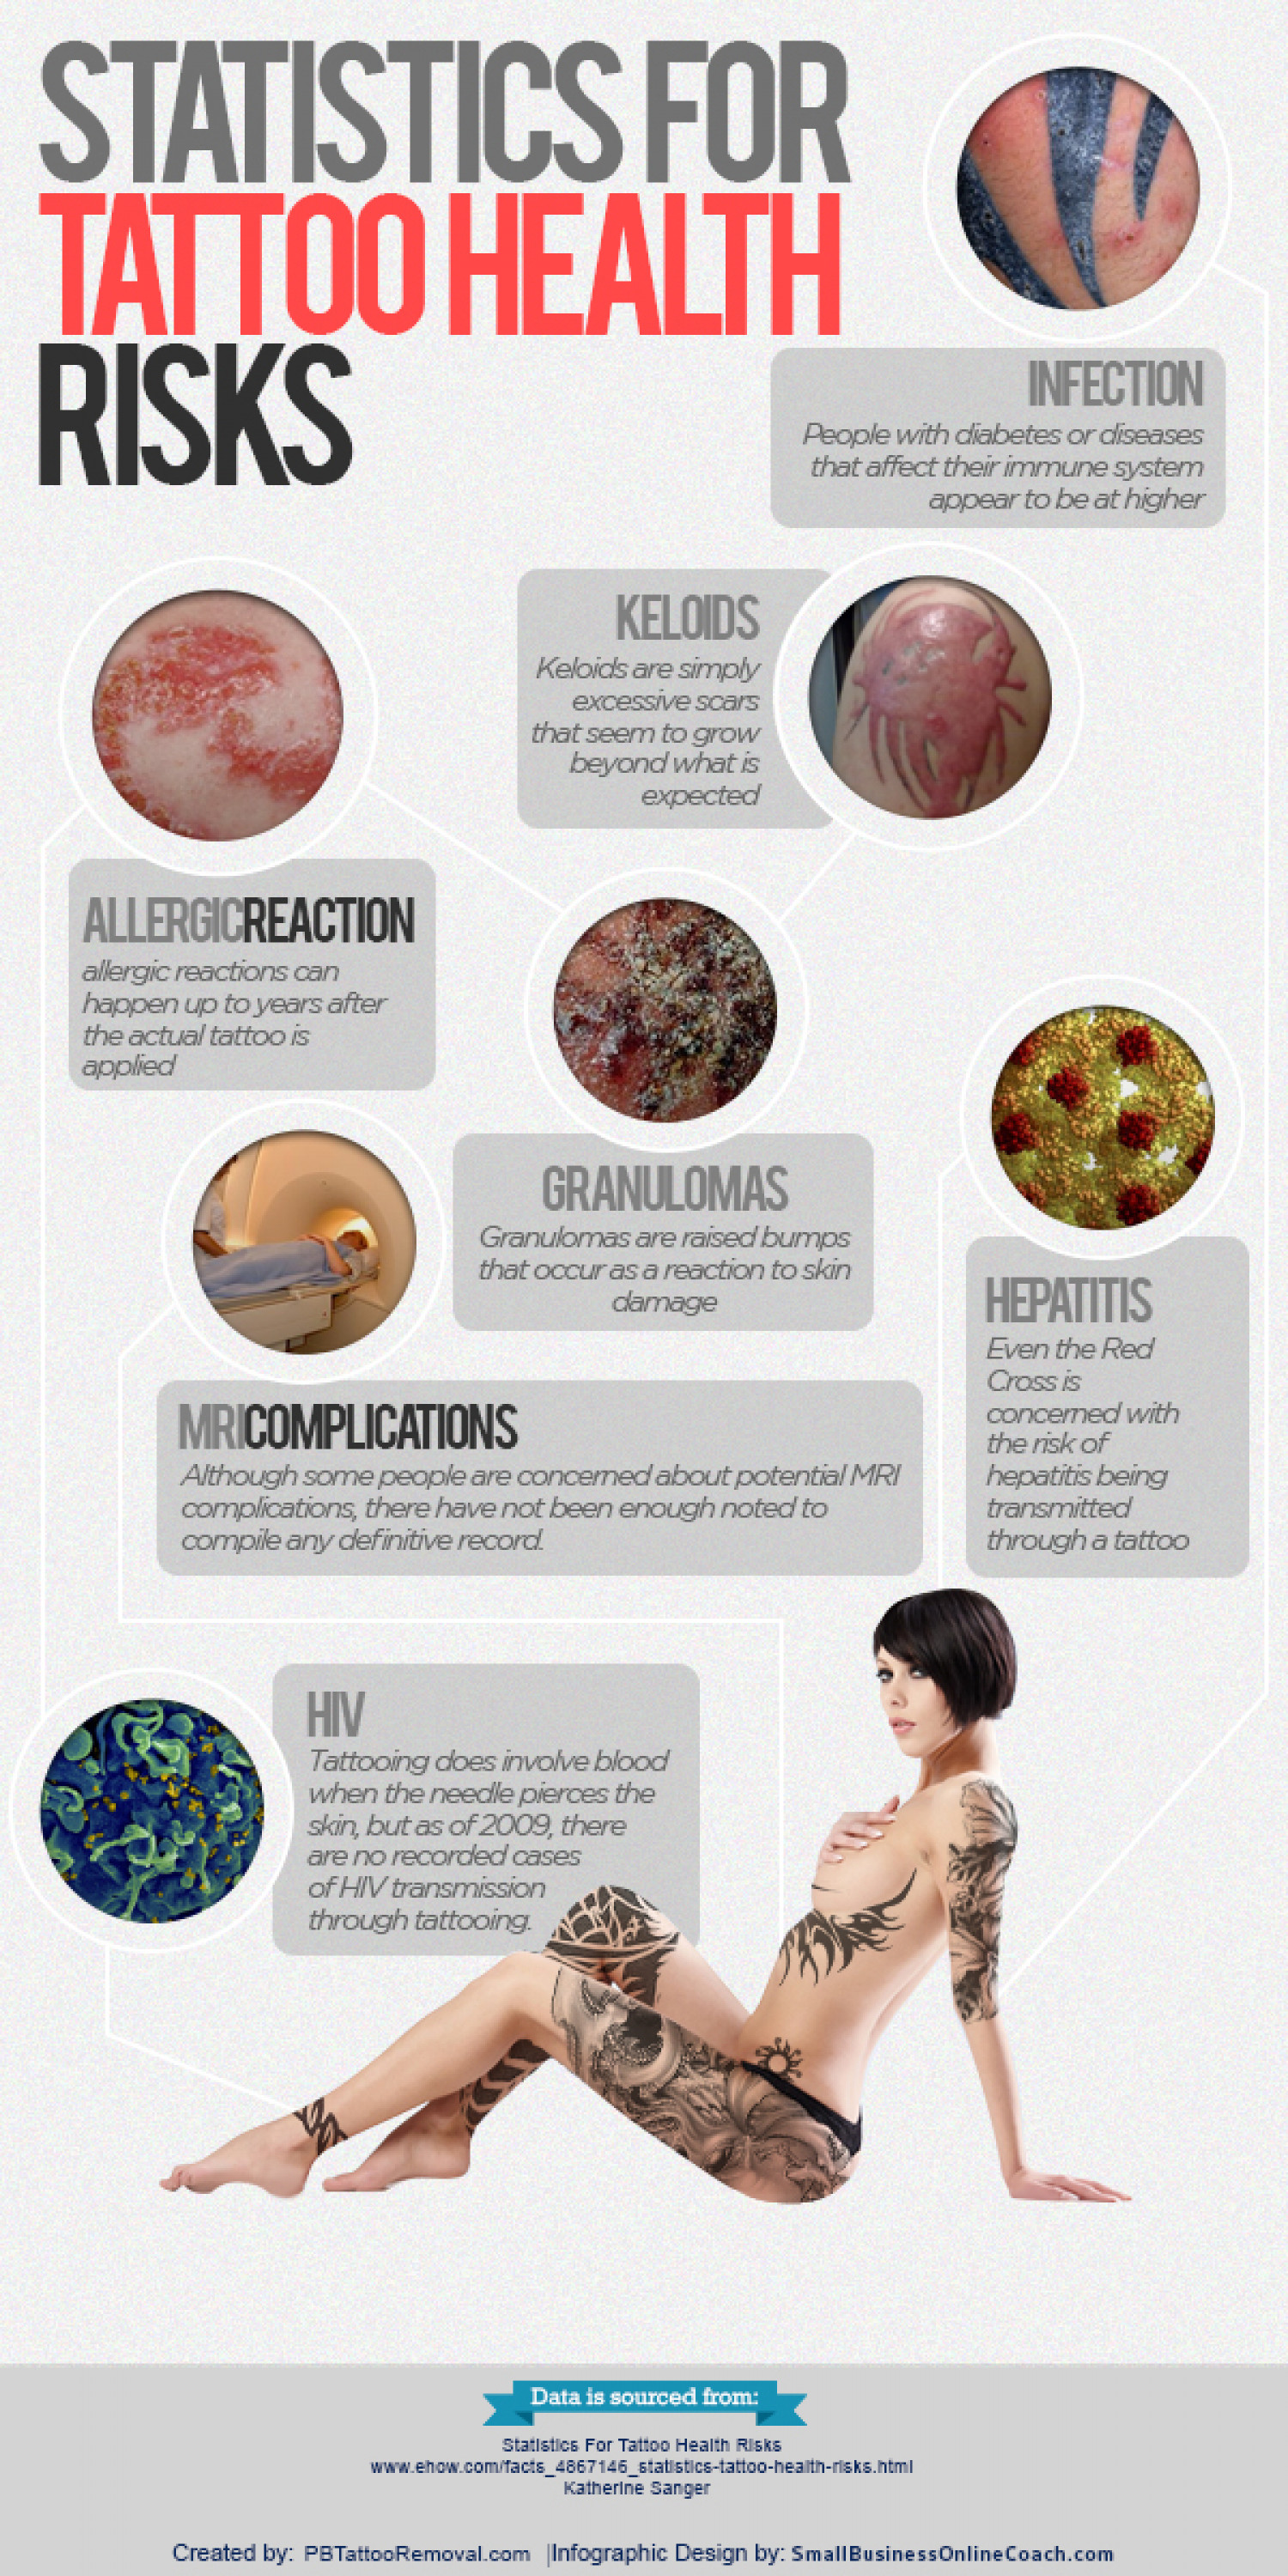 Statistics for Tattoo Health Risks Infographic